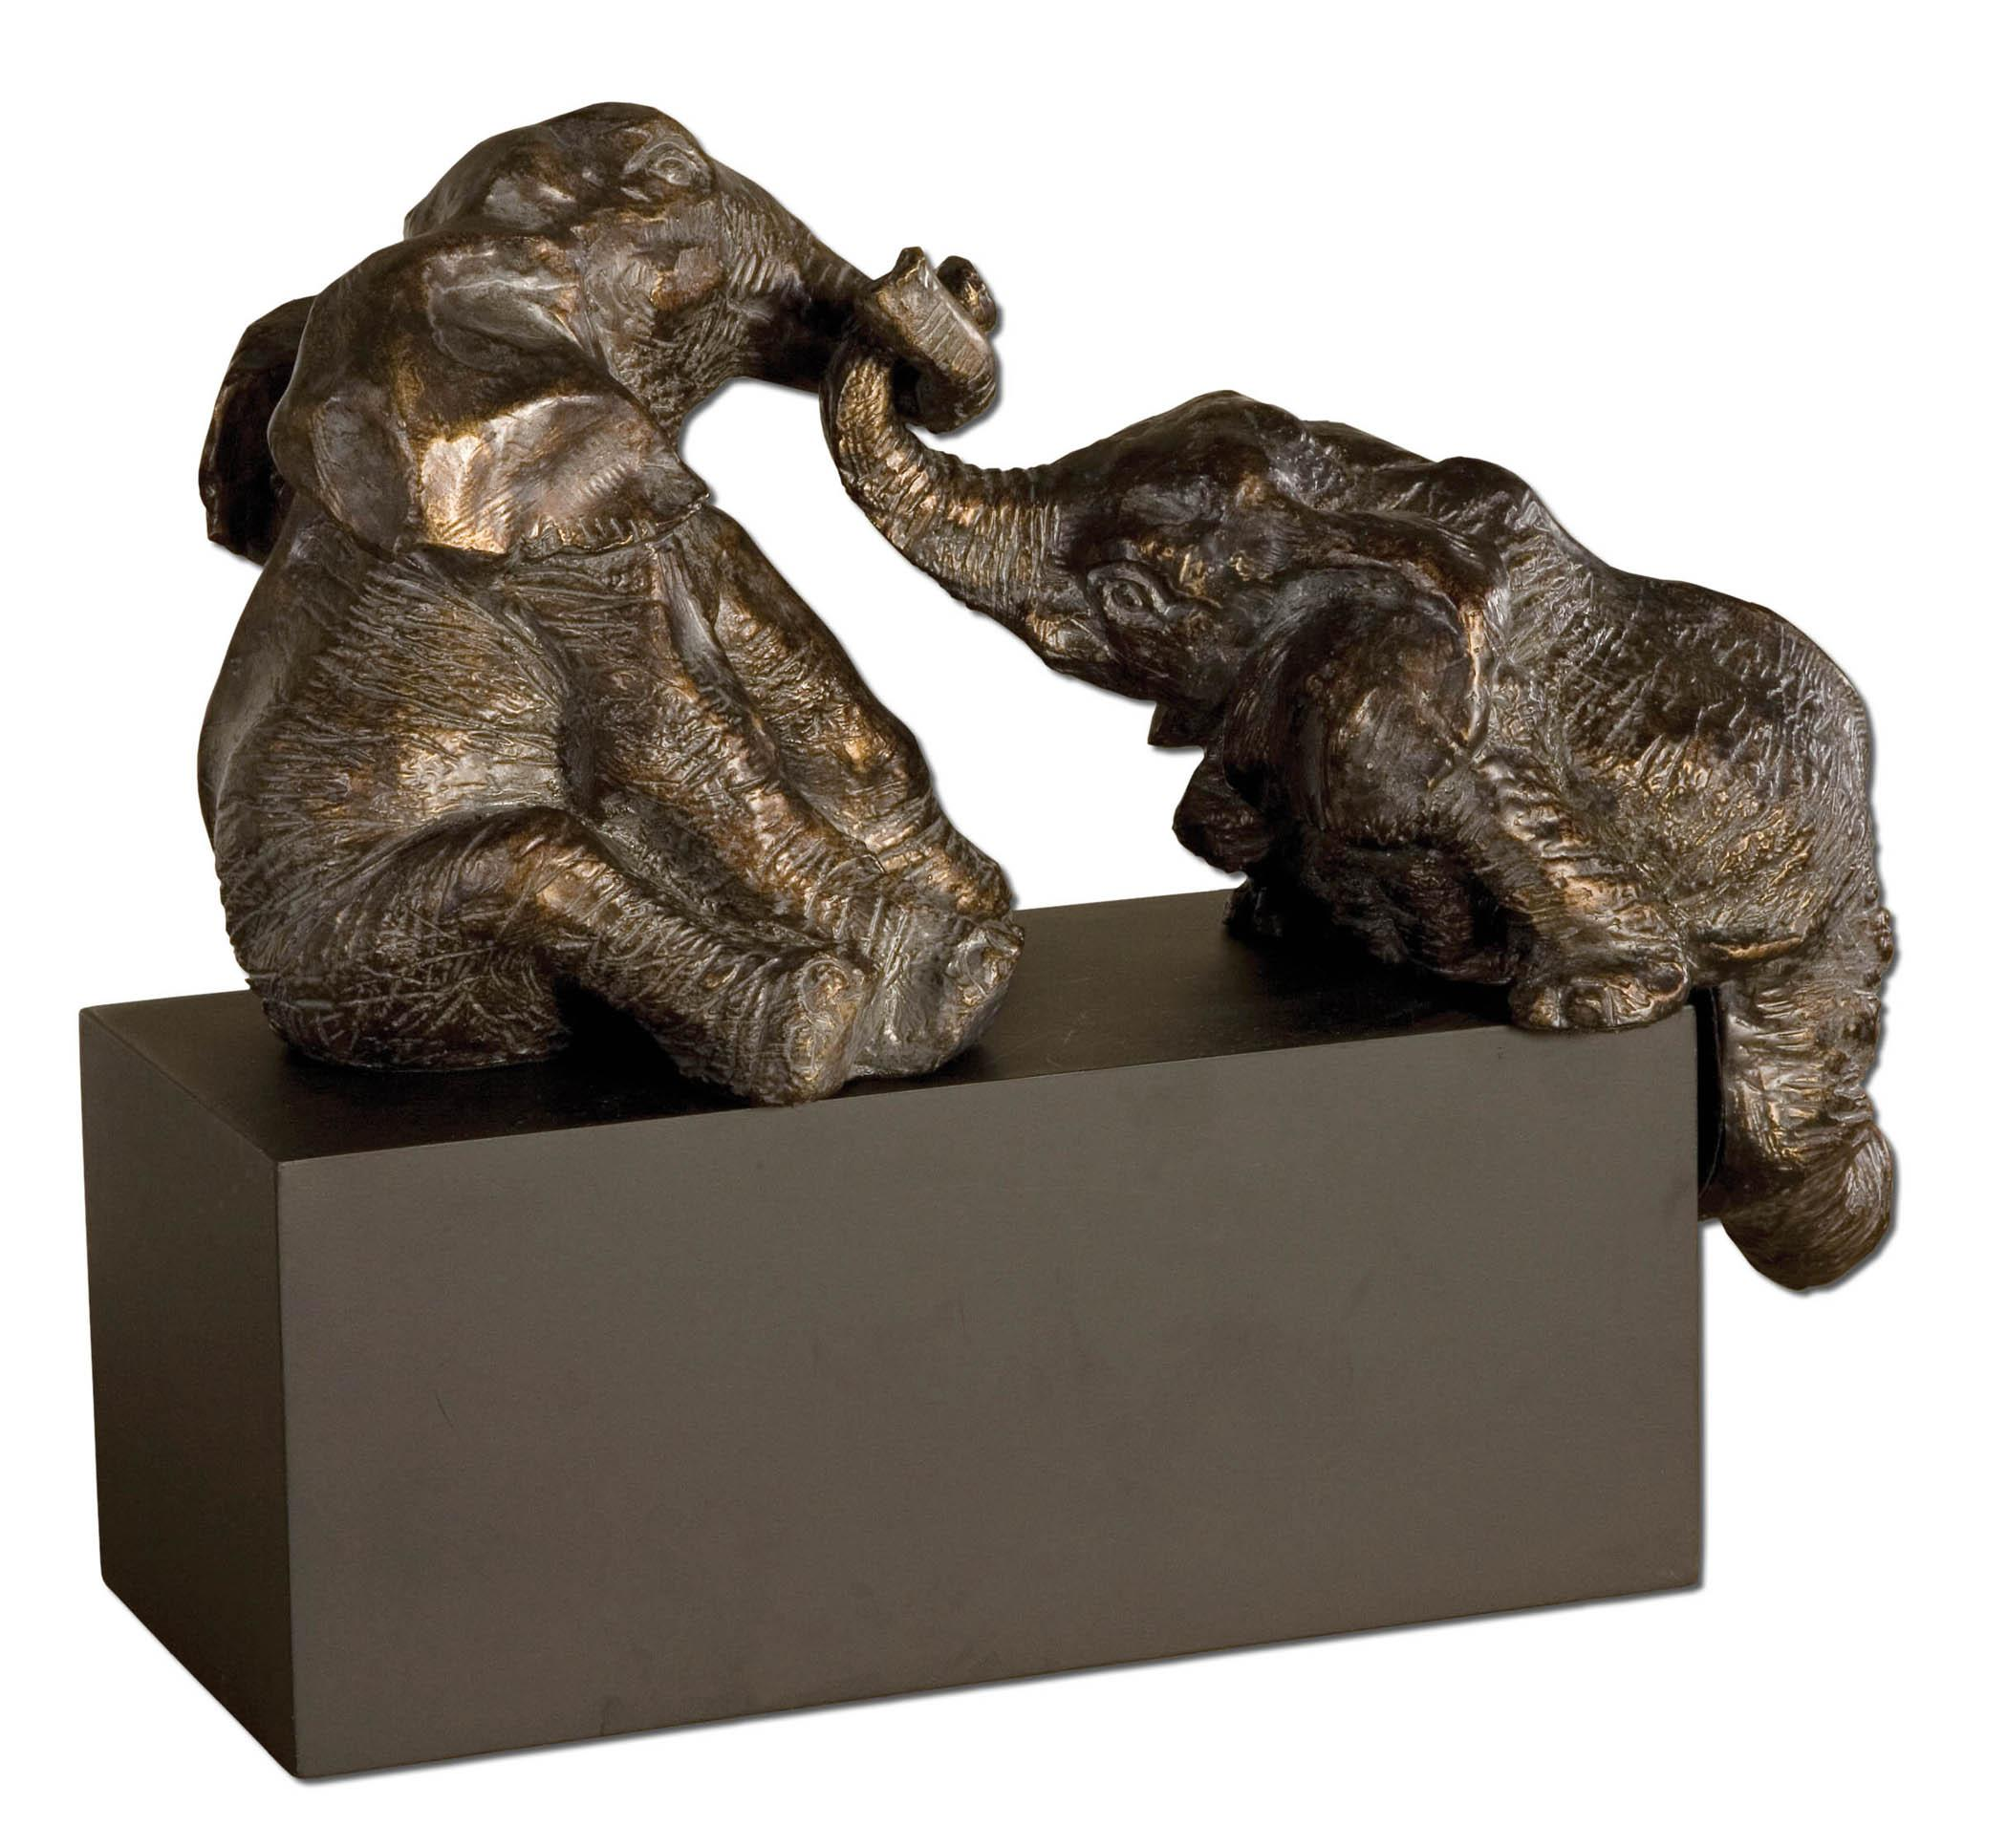 Accessories - Statues and Figurines Playful Pachyderms by Uttermost at Suburban Furniture